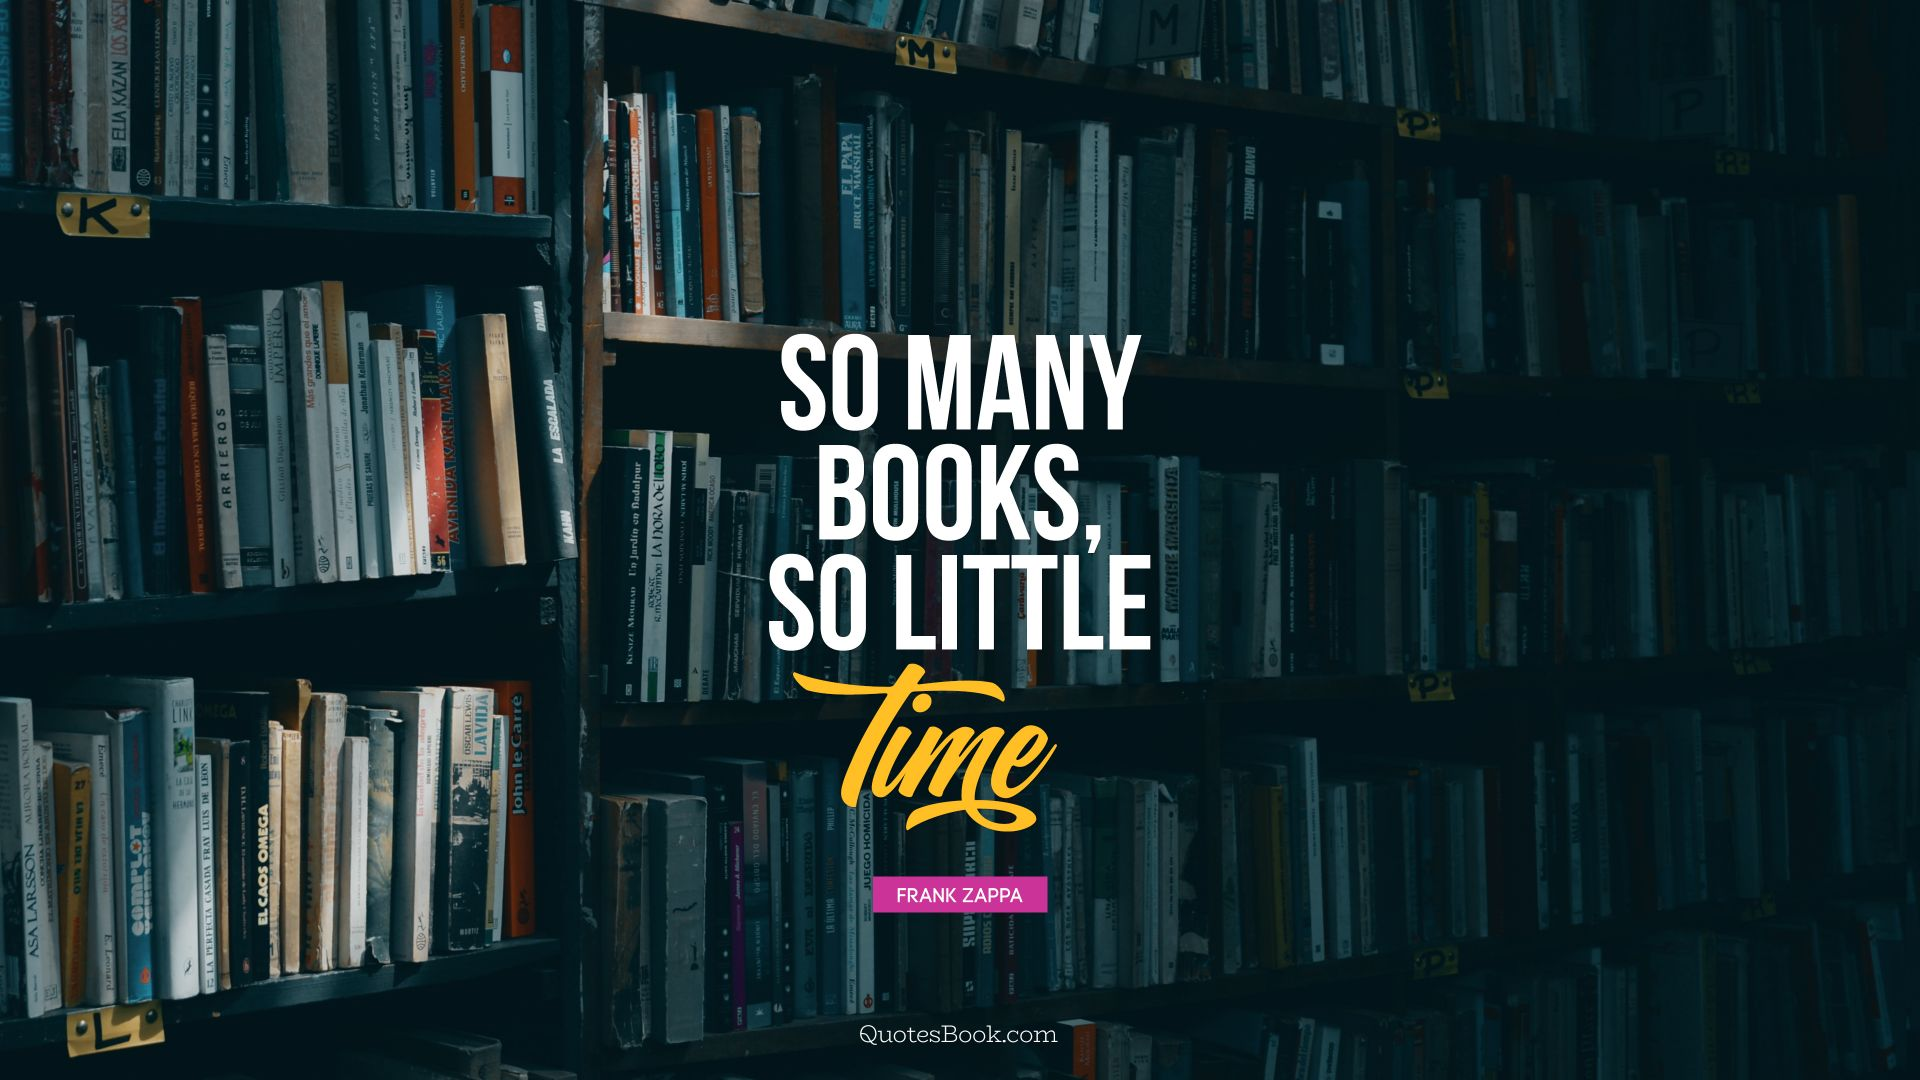 So many books, so little time. - Quote by Frank Zappa